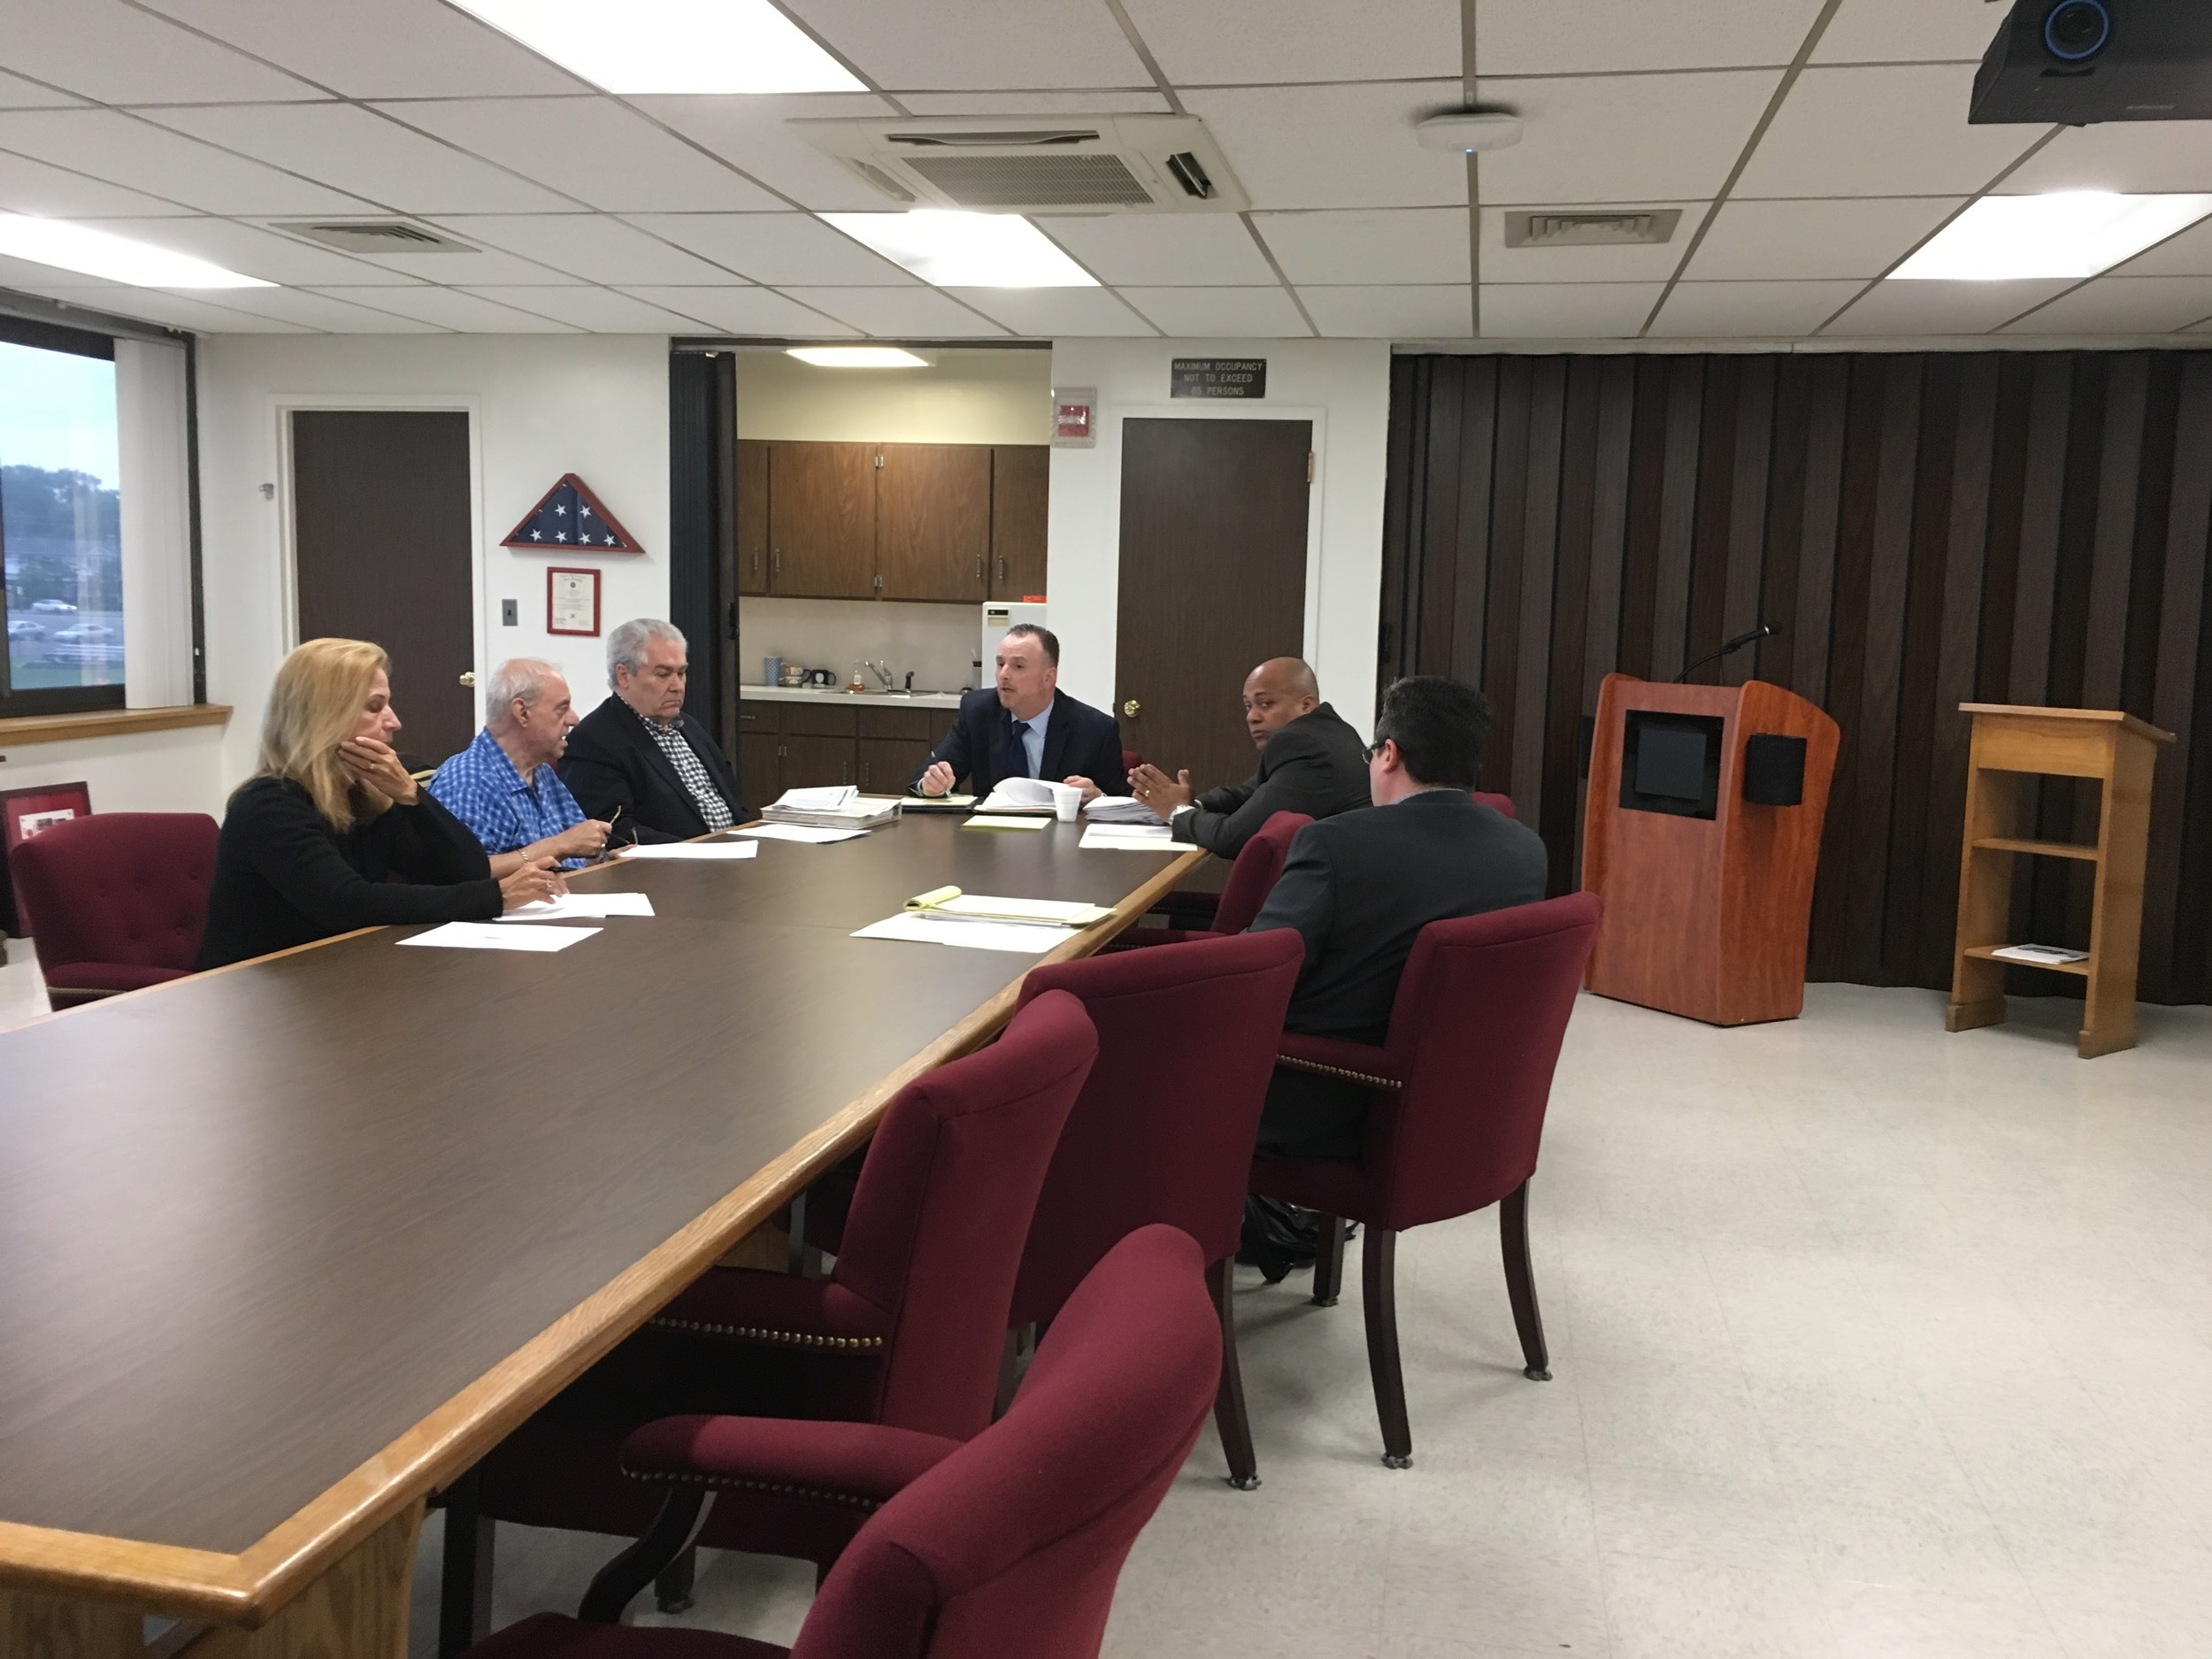 The Residency Advisory Committee met on May 30 to discuss its effectiveness this past year. The committee includes members of Central High School District's Board of Education as well as Clifford Odell, the district's assistant superintendent for personnel and administration.